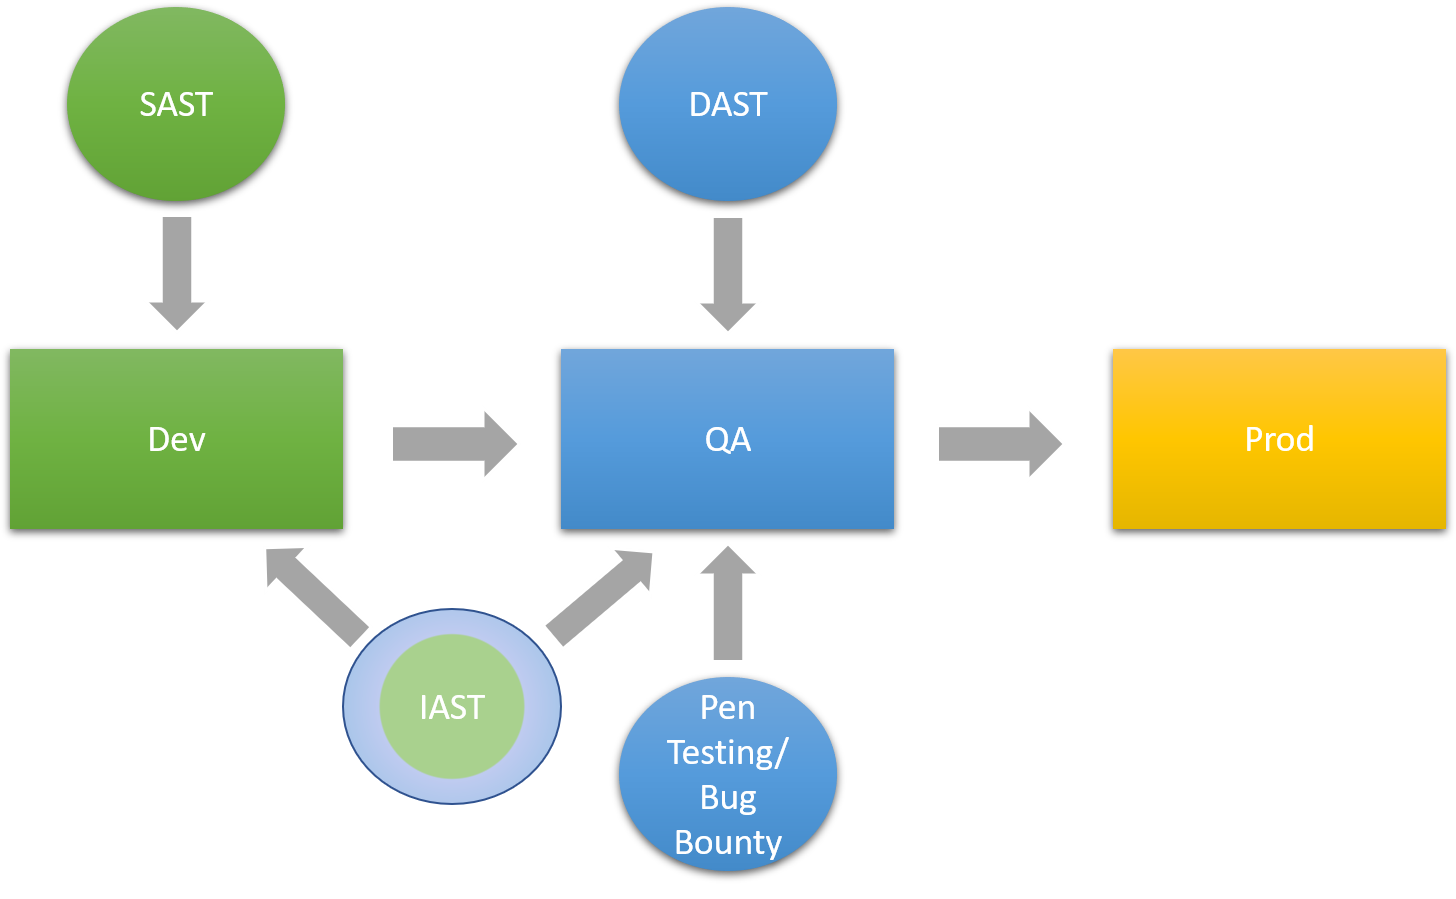 Diagram showing how SAST, DAST, IAST, and Pen testing/bug bounty tie into the secure software development life cycle